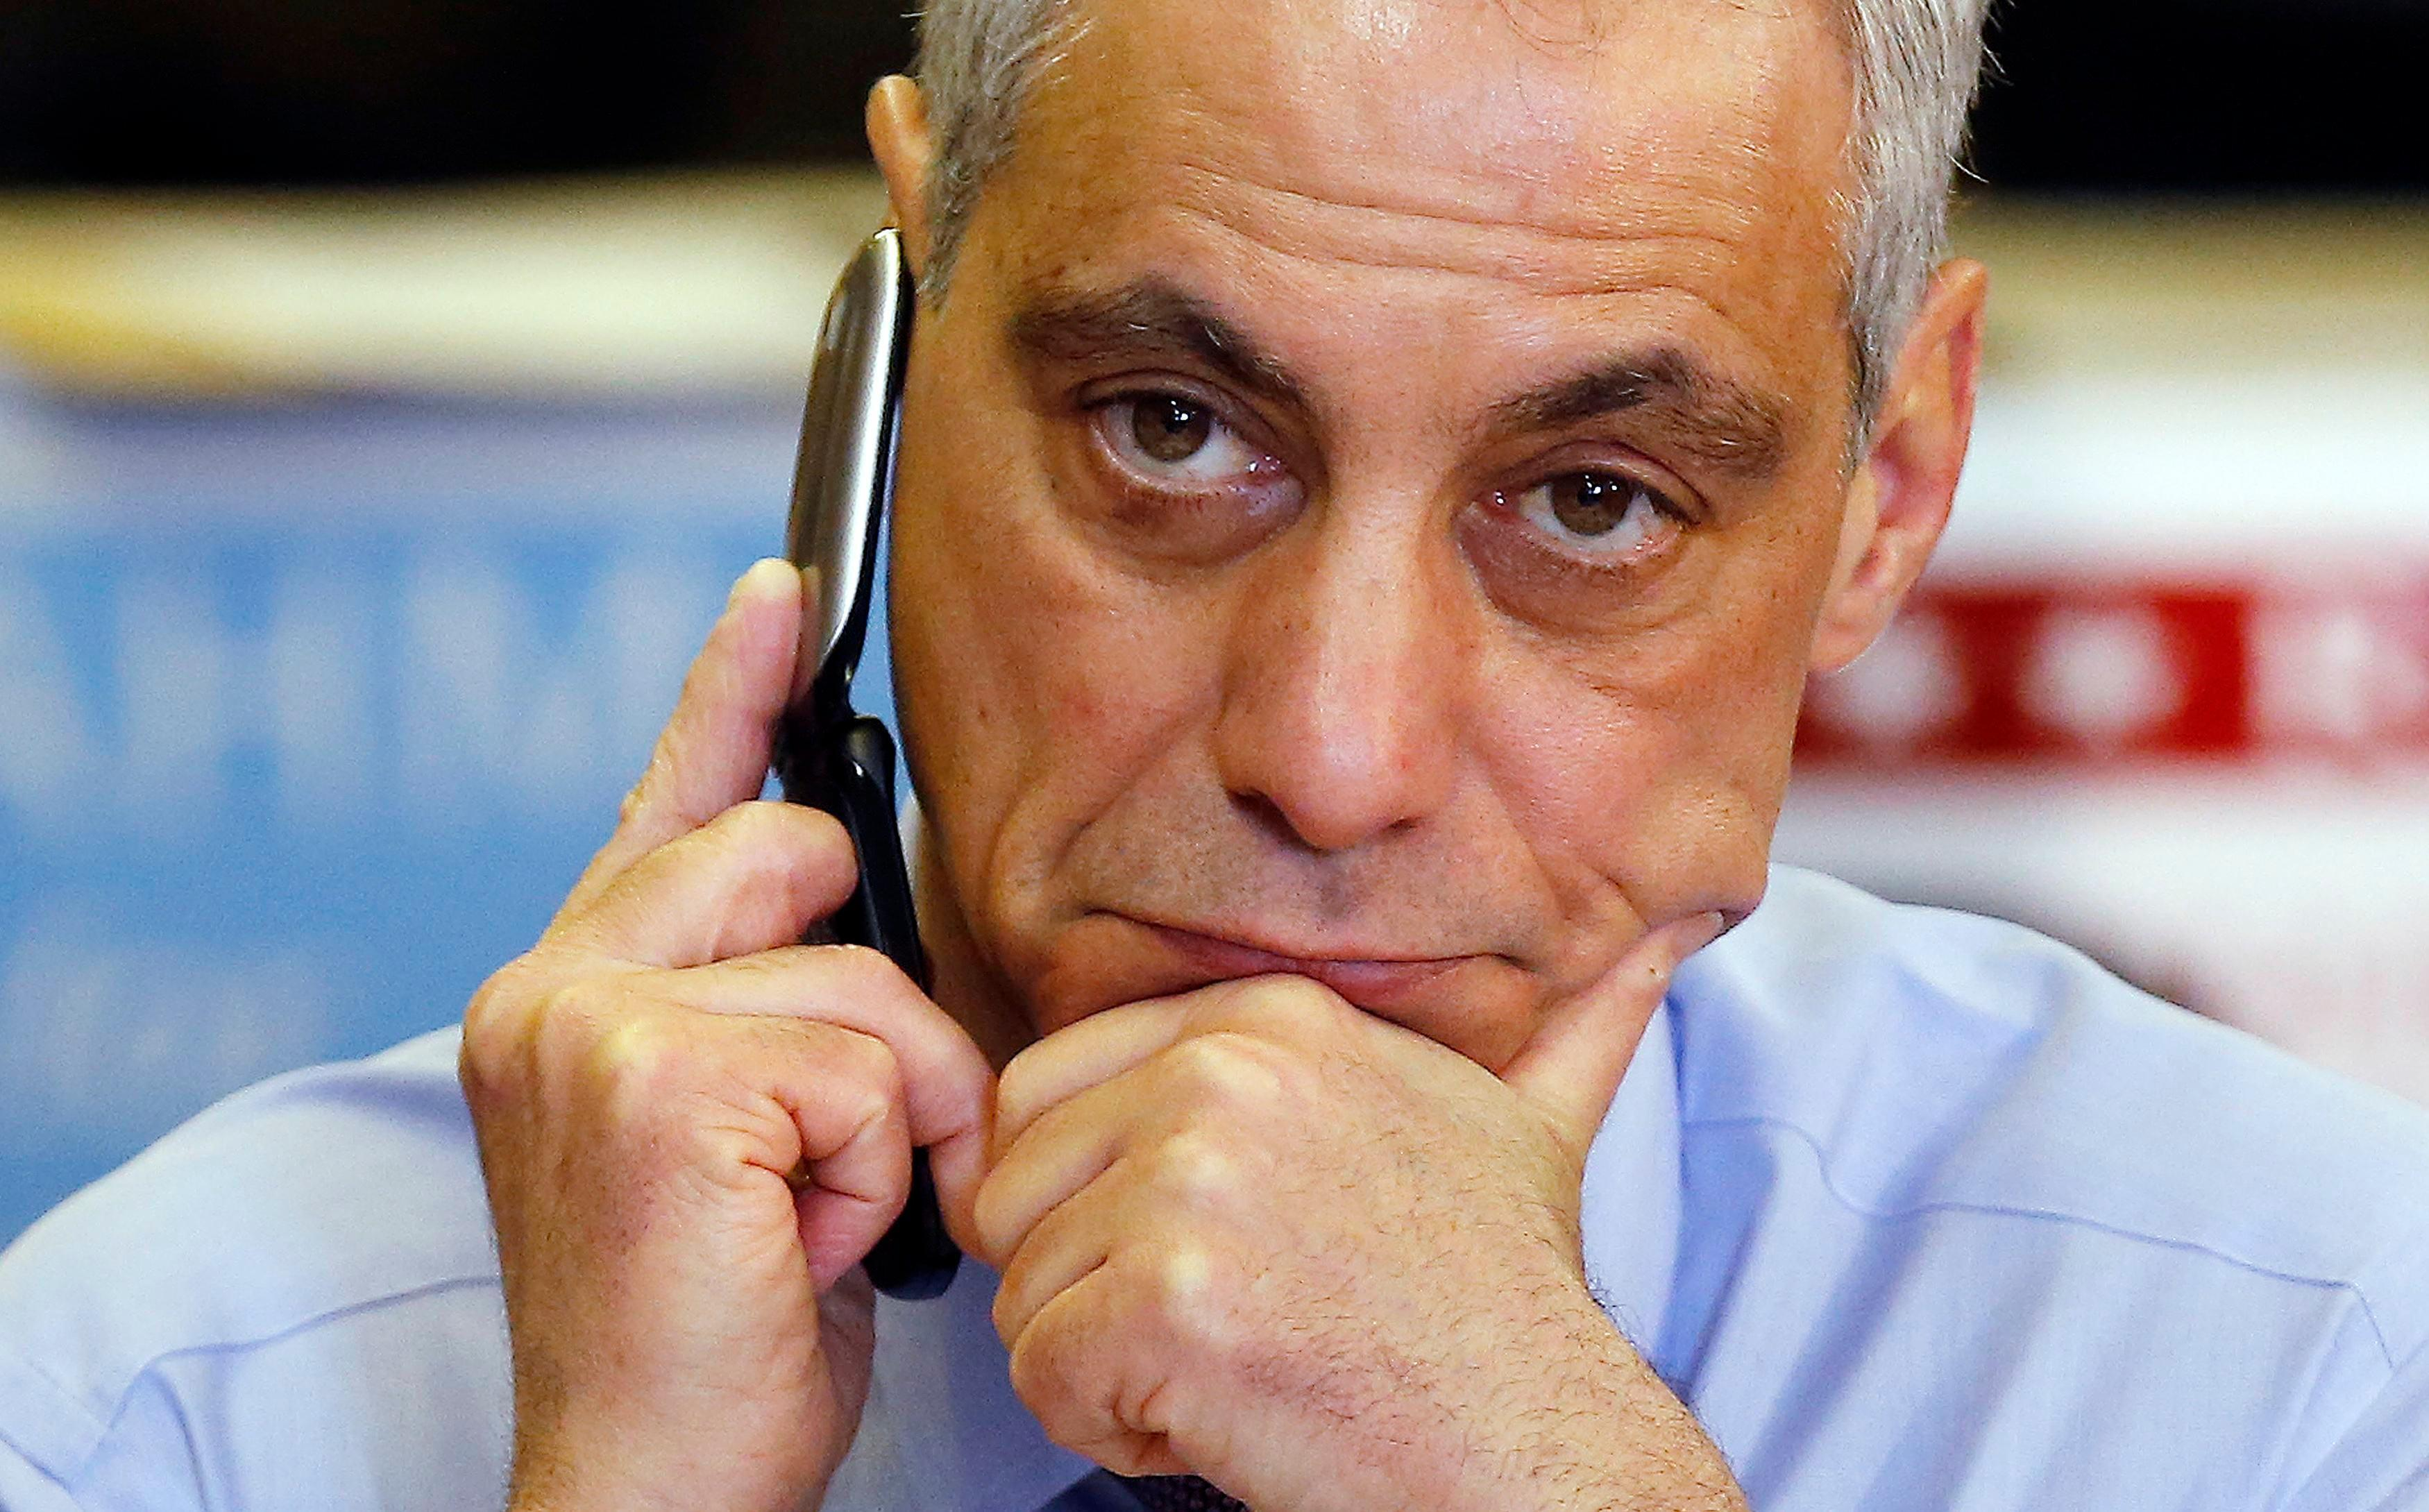 Broken city: Rahm Emanuel and the unraveling of Chicago